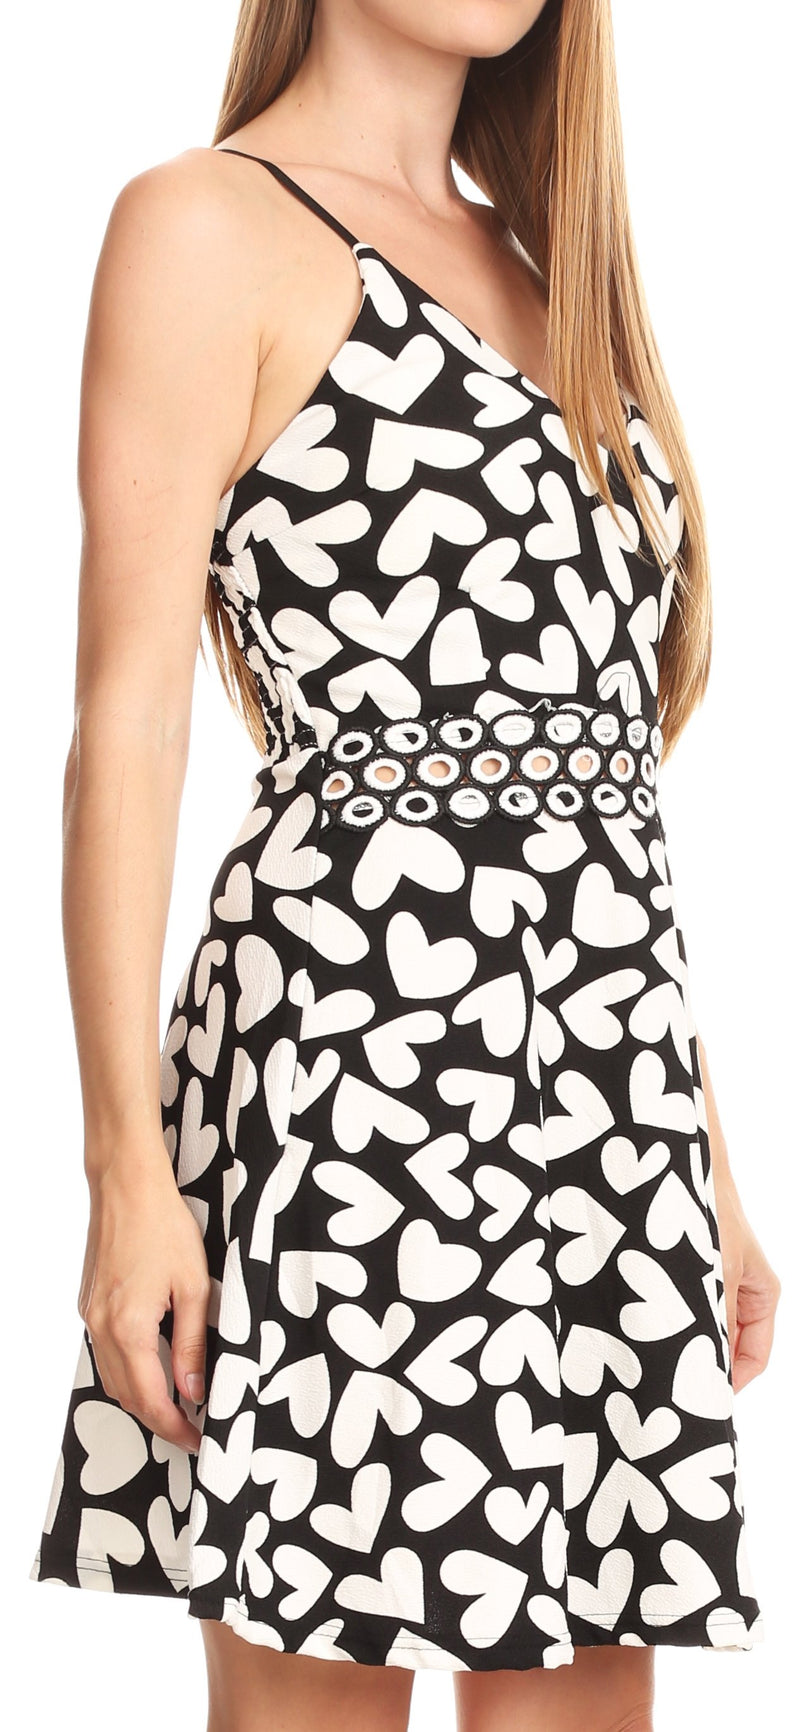 Sakkas Adele Balconette Short Casual Dress Adjustable Shoulder Straps Flared